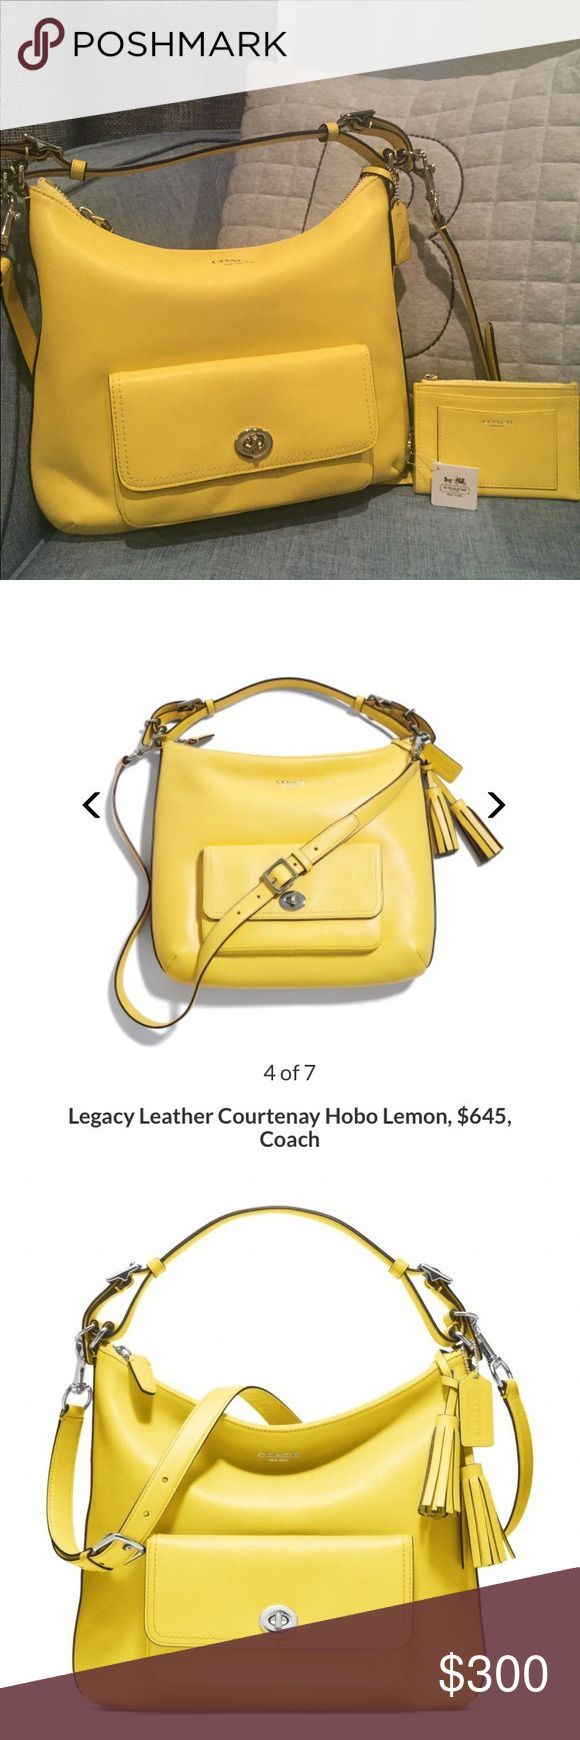 Brand New Coach Legacy Courtenay Hobo and wallet! Brand new Coach Legacy Courtenay hobo bag with matching slim wallet in the perfect lemon yellow!! Never been used, originally stuffing and care card in purse! The wallet still has the tags and care card! The purse was originally $645 and the wallet was $68!! What a deal for both!!! 😘😘 Coach Bags Hobos